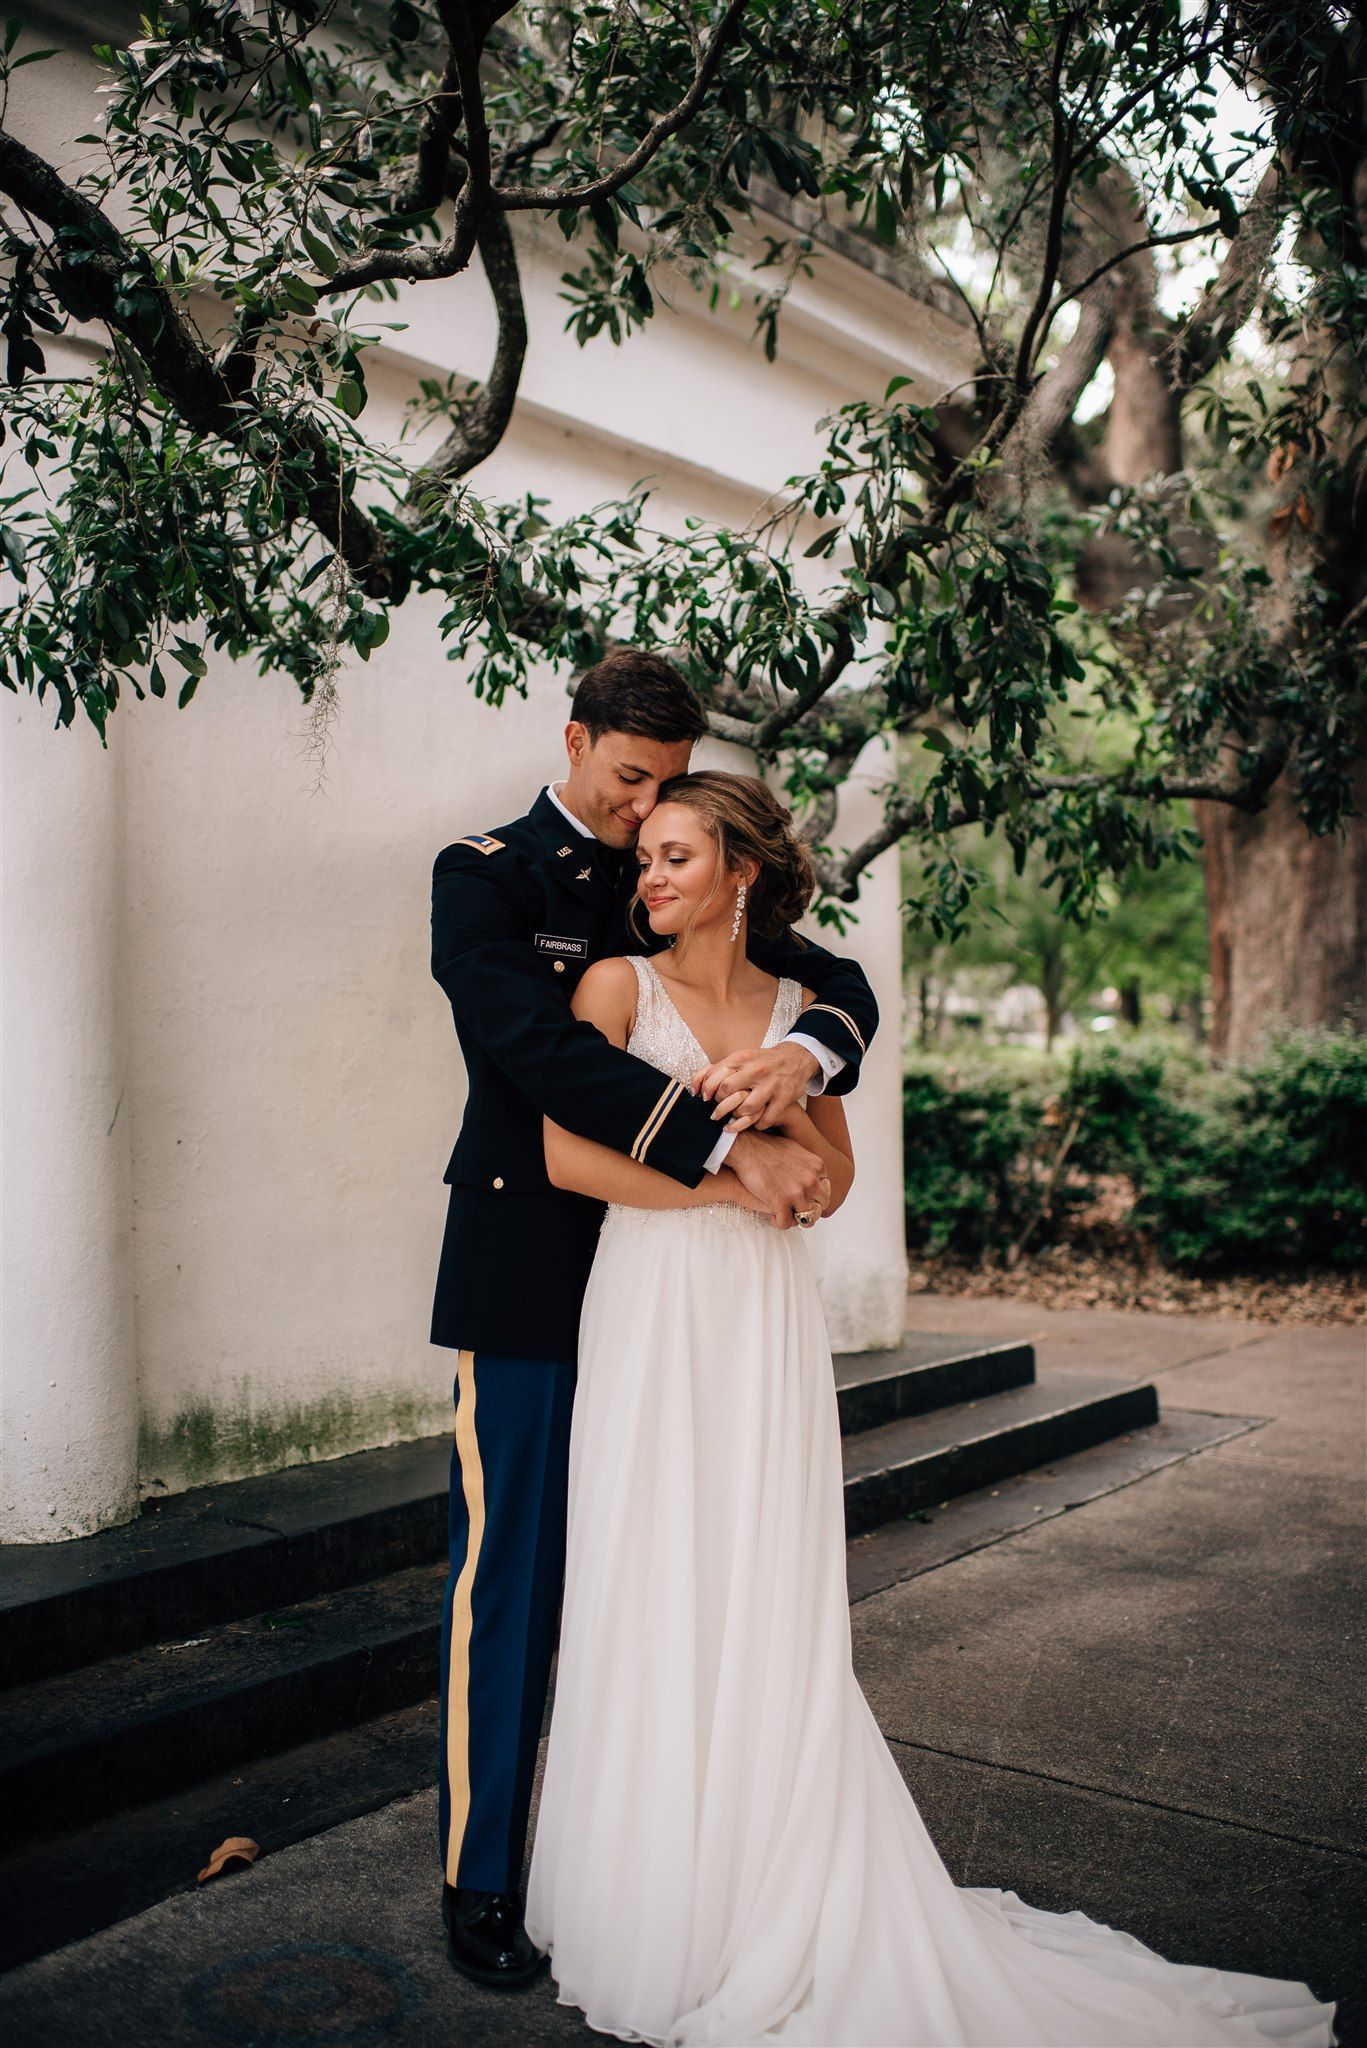 Romantic Wedding Southern Wedding Military Wedding Army Uniform Groom Do In 2020 Military Wedding Army Military Wedding Army Wedding